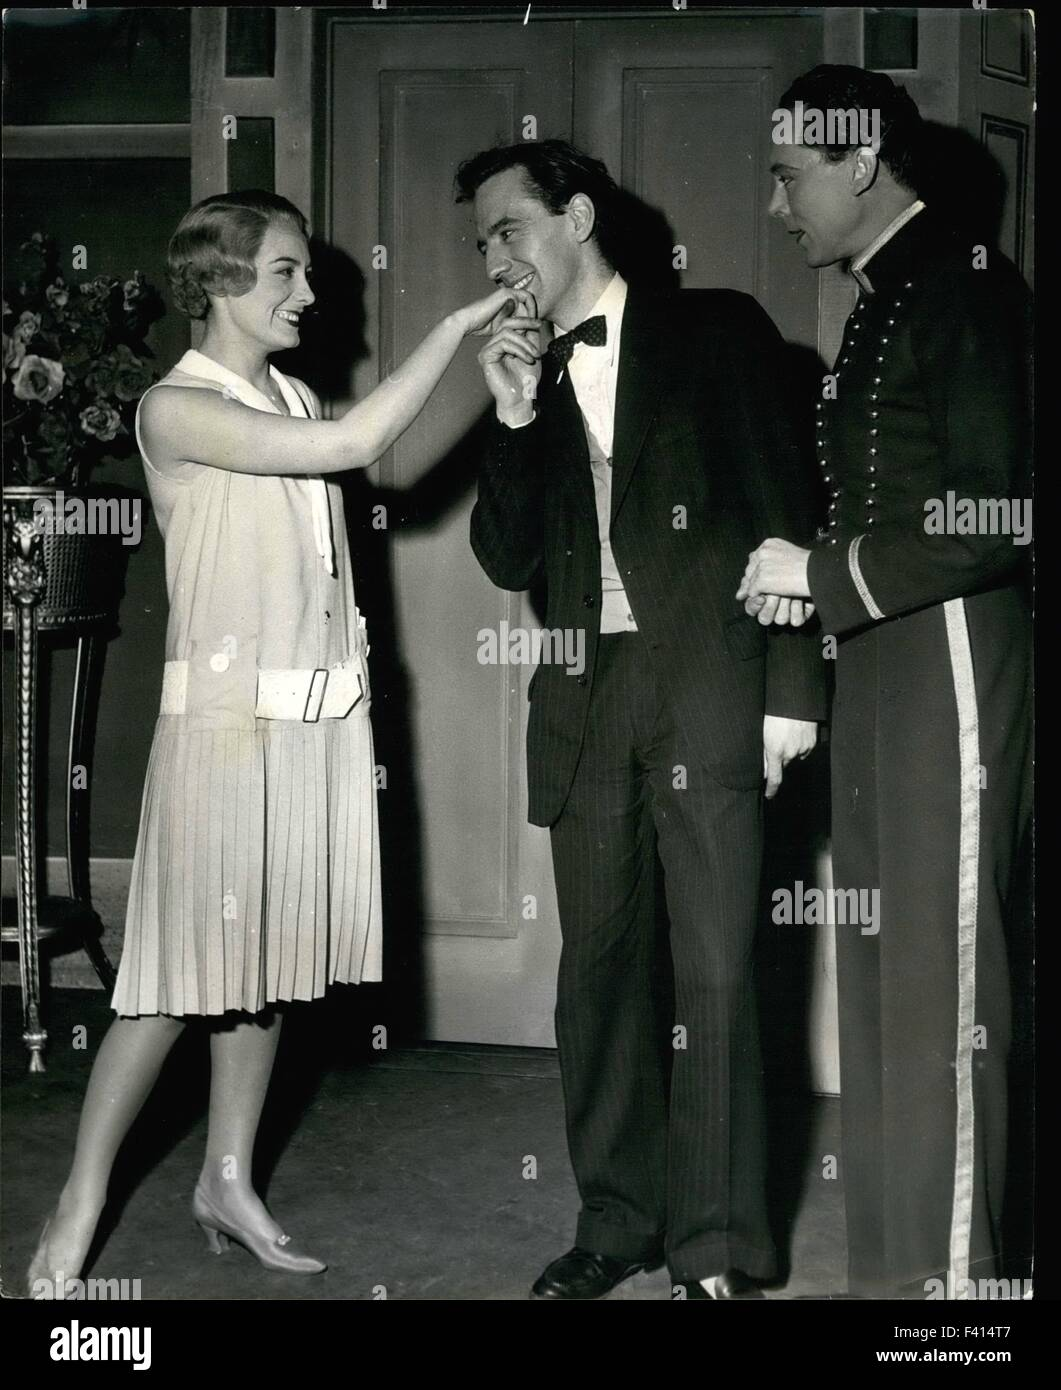 Feb 24 1967 the boy friend is 29 year old sandy wilson 24 1967 the boy friend is 29 year old sandy wilson seen greeting the star anne rogerz anthony hayes who plays opposite her looks and m4hsunfo